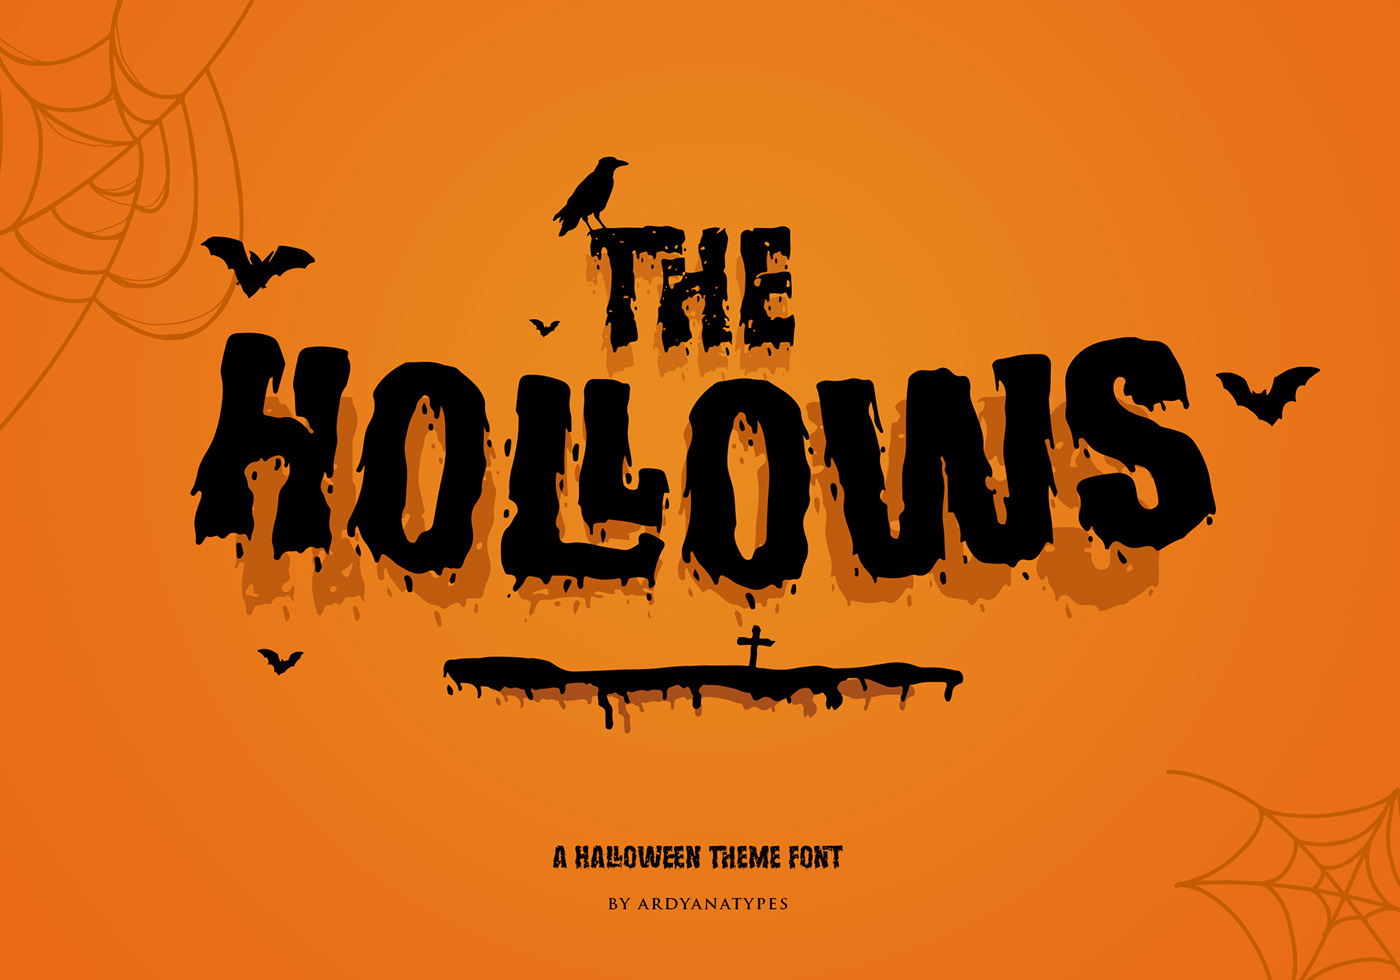 Шрифт – The Hollows